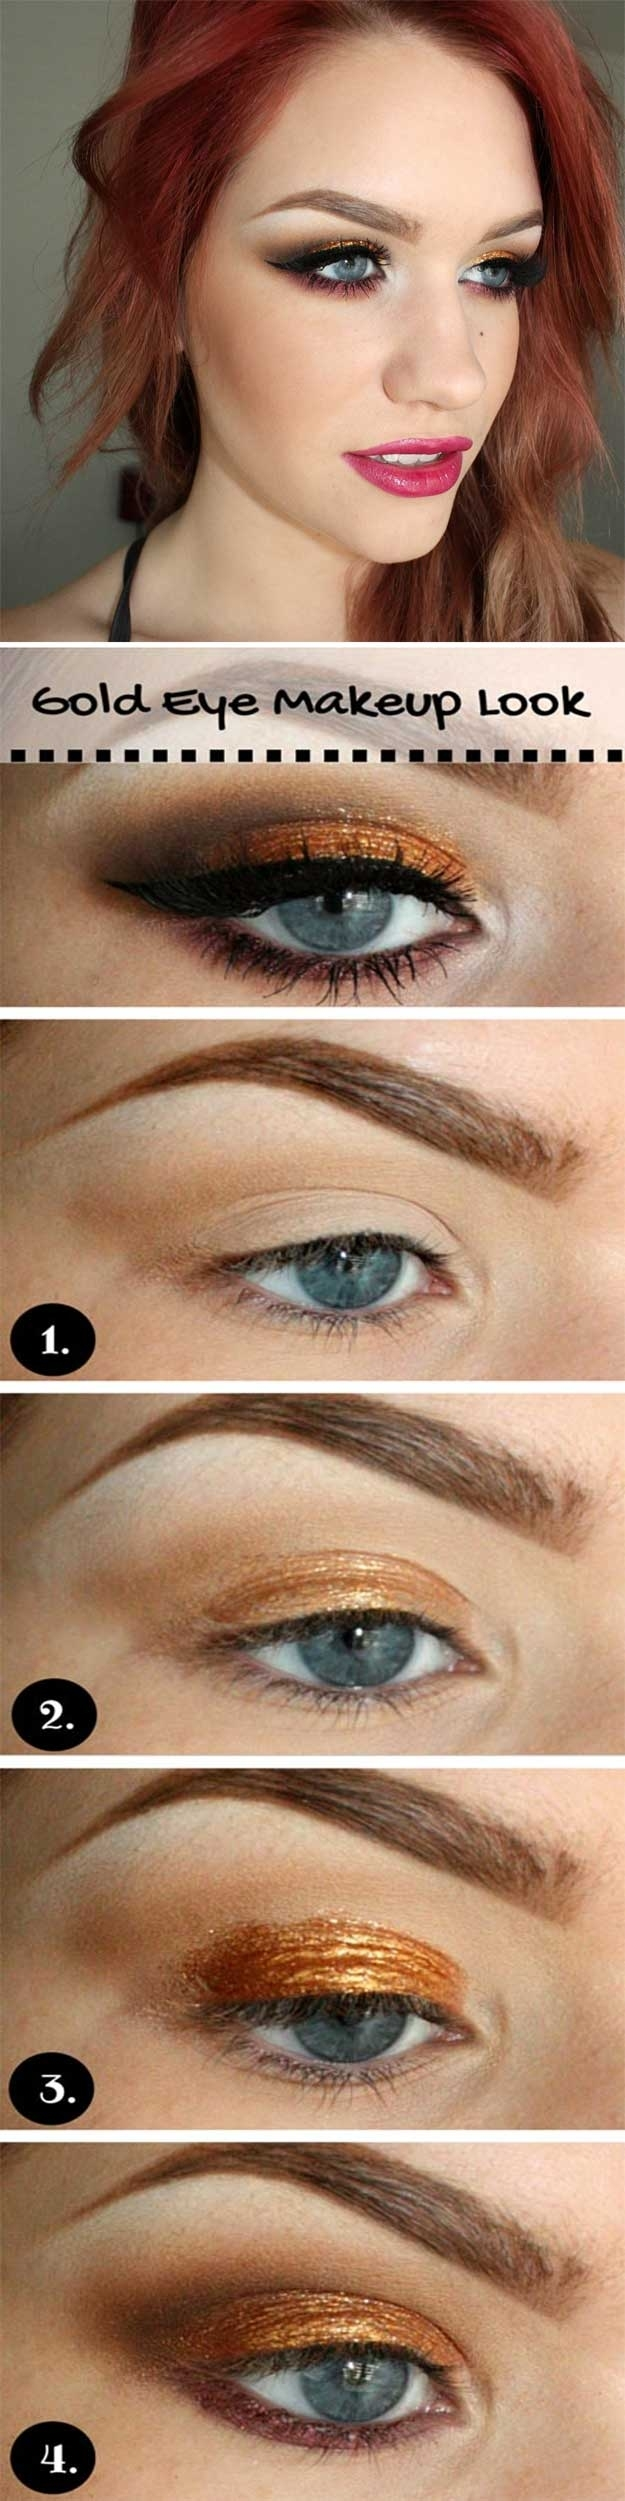 makeup tutorials for blue eyes and red hair - wavy haircut